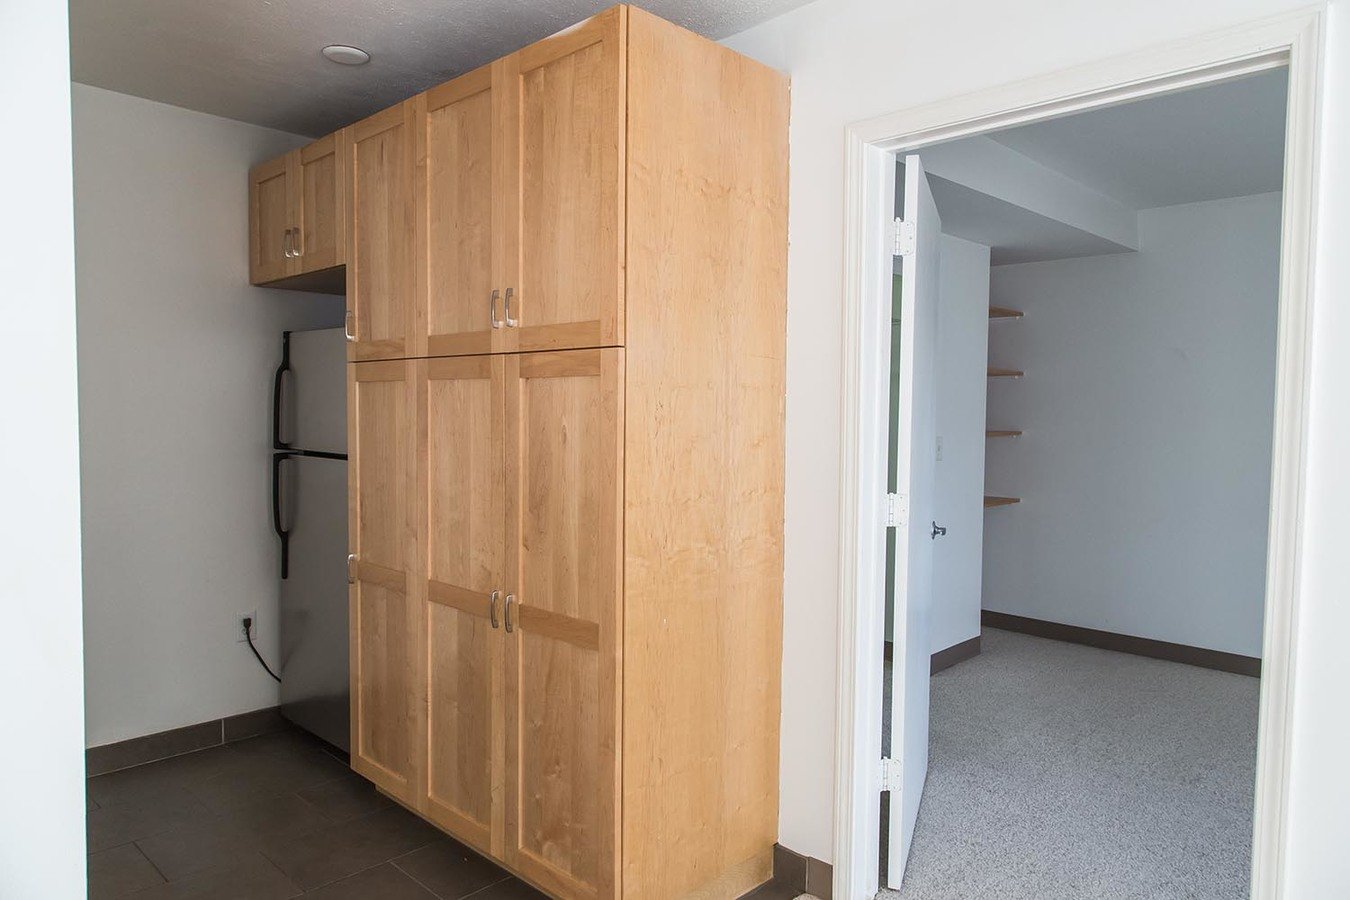 2 Bedrooms 1 Bathroom Apartment for rent at Six40 in Kansas City, MO